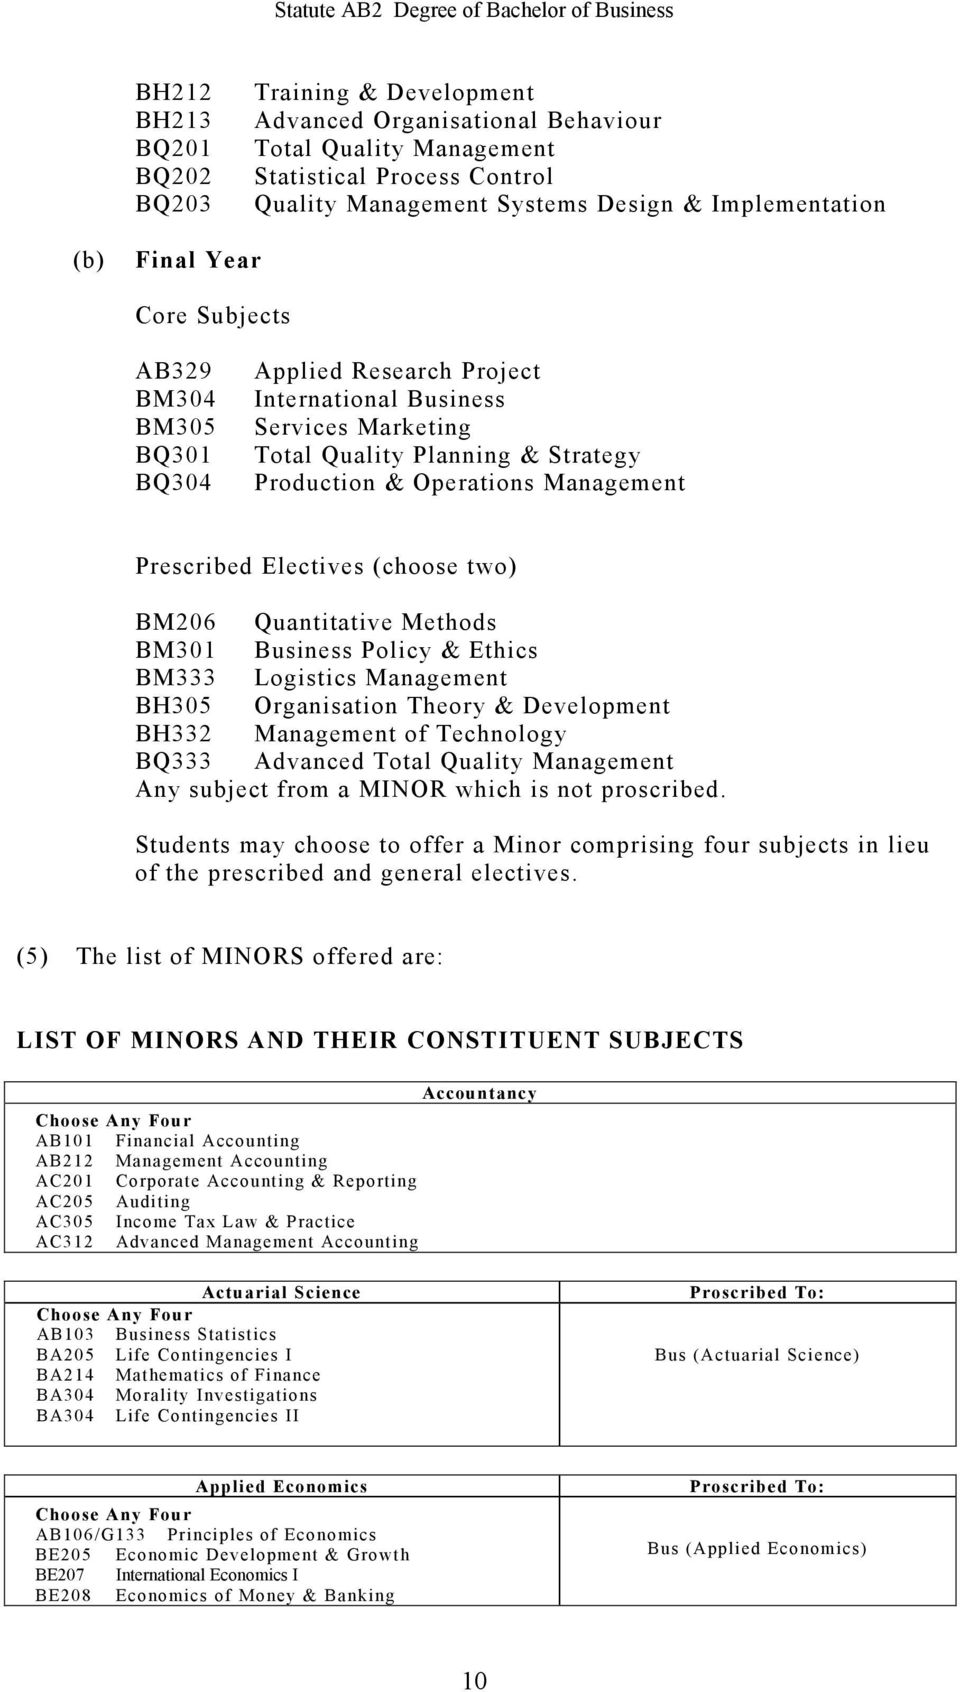 Organisation Theory & Development BH332 Management of Technology BQ333 Advanced Total Quality Management (5) The list of MINORS offered are: LIST OF MINORS AND THEIR CONSTITUENT SUBJECTS Accountancy